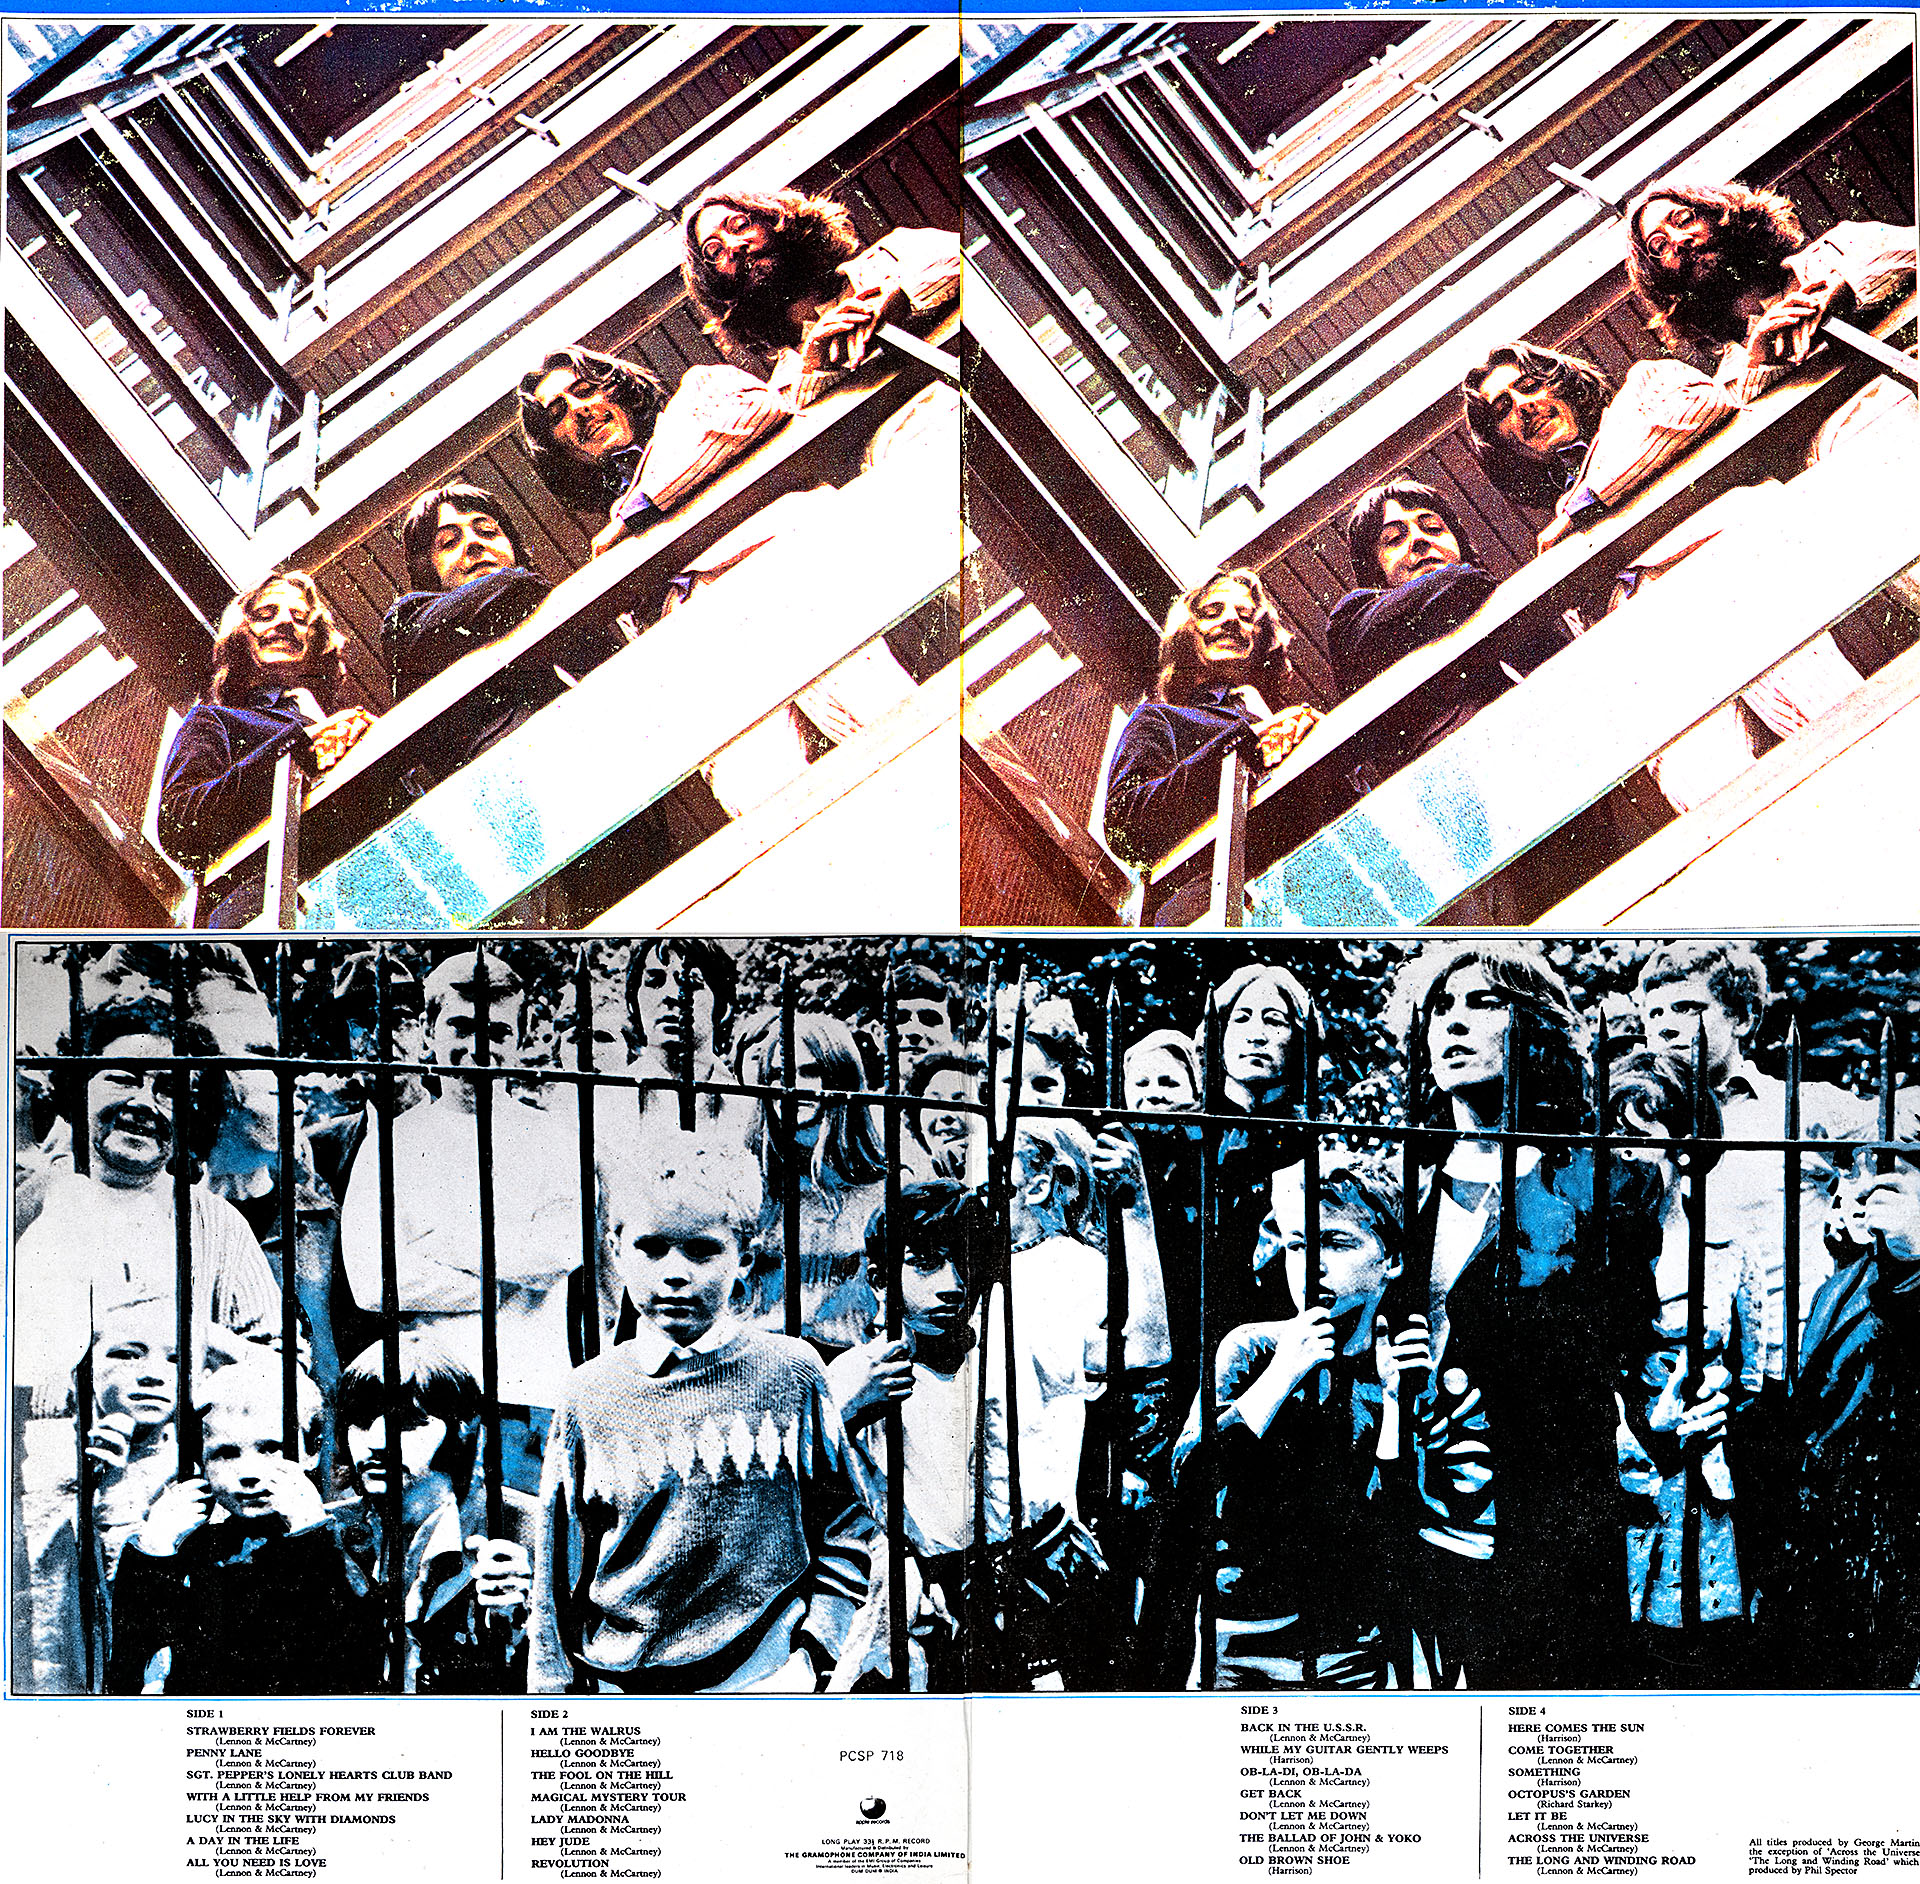 The Beatles 1967 - 1970 - The Beatles